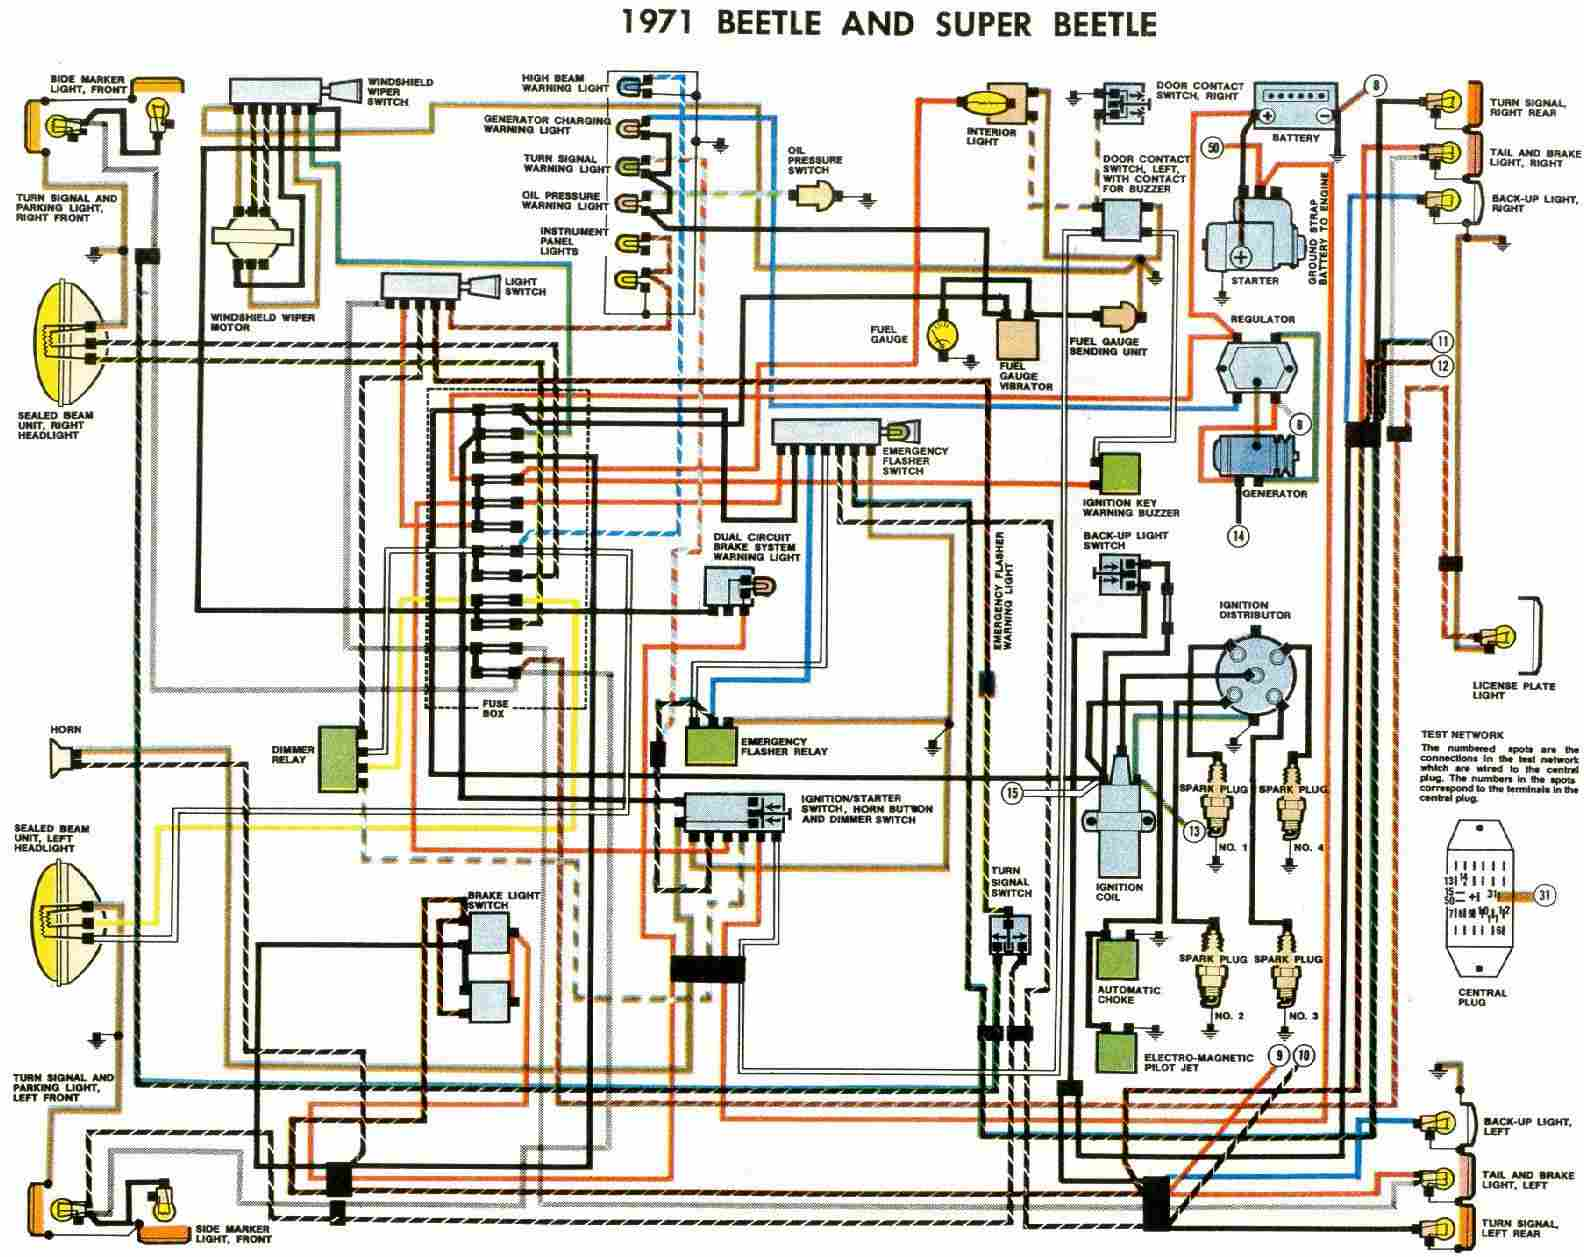 VW Beetle and Super Beetle 1971 Electrical Wiring Diagram